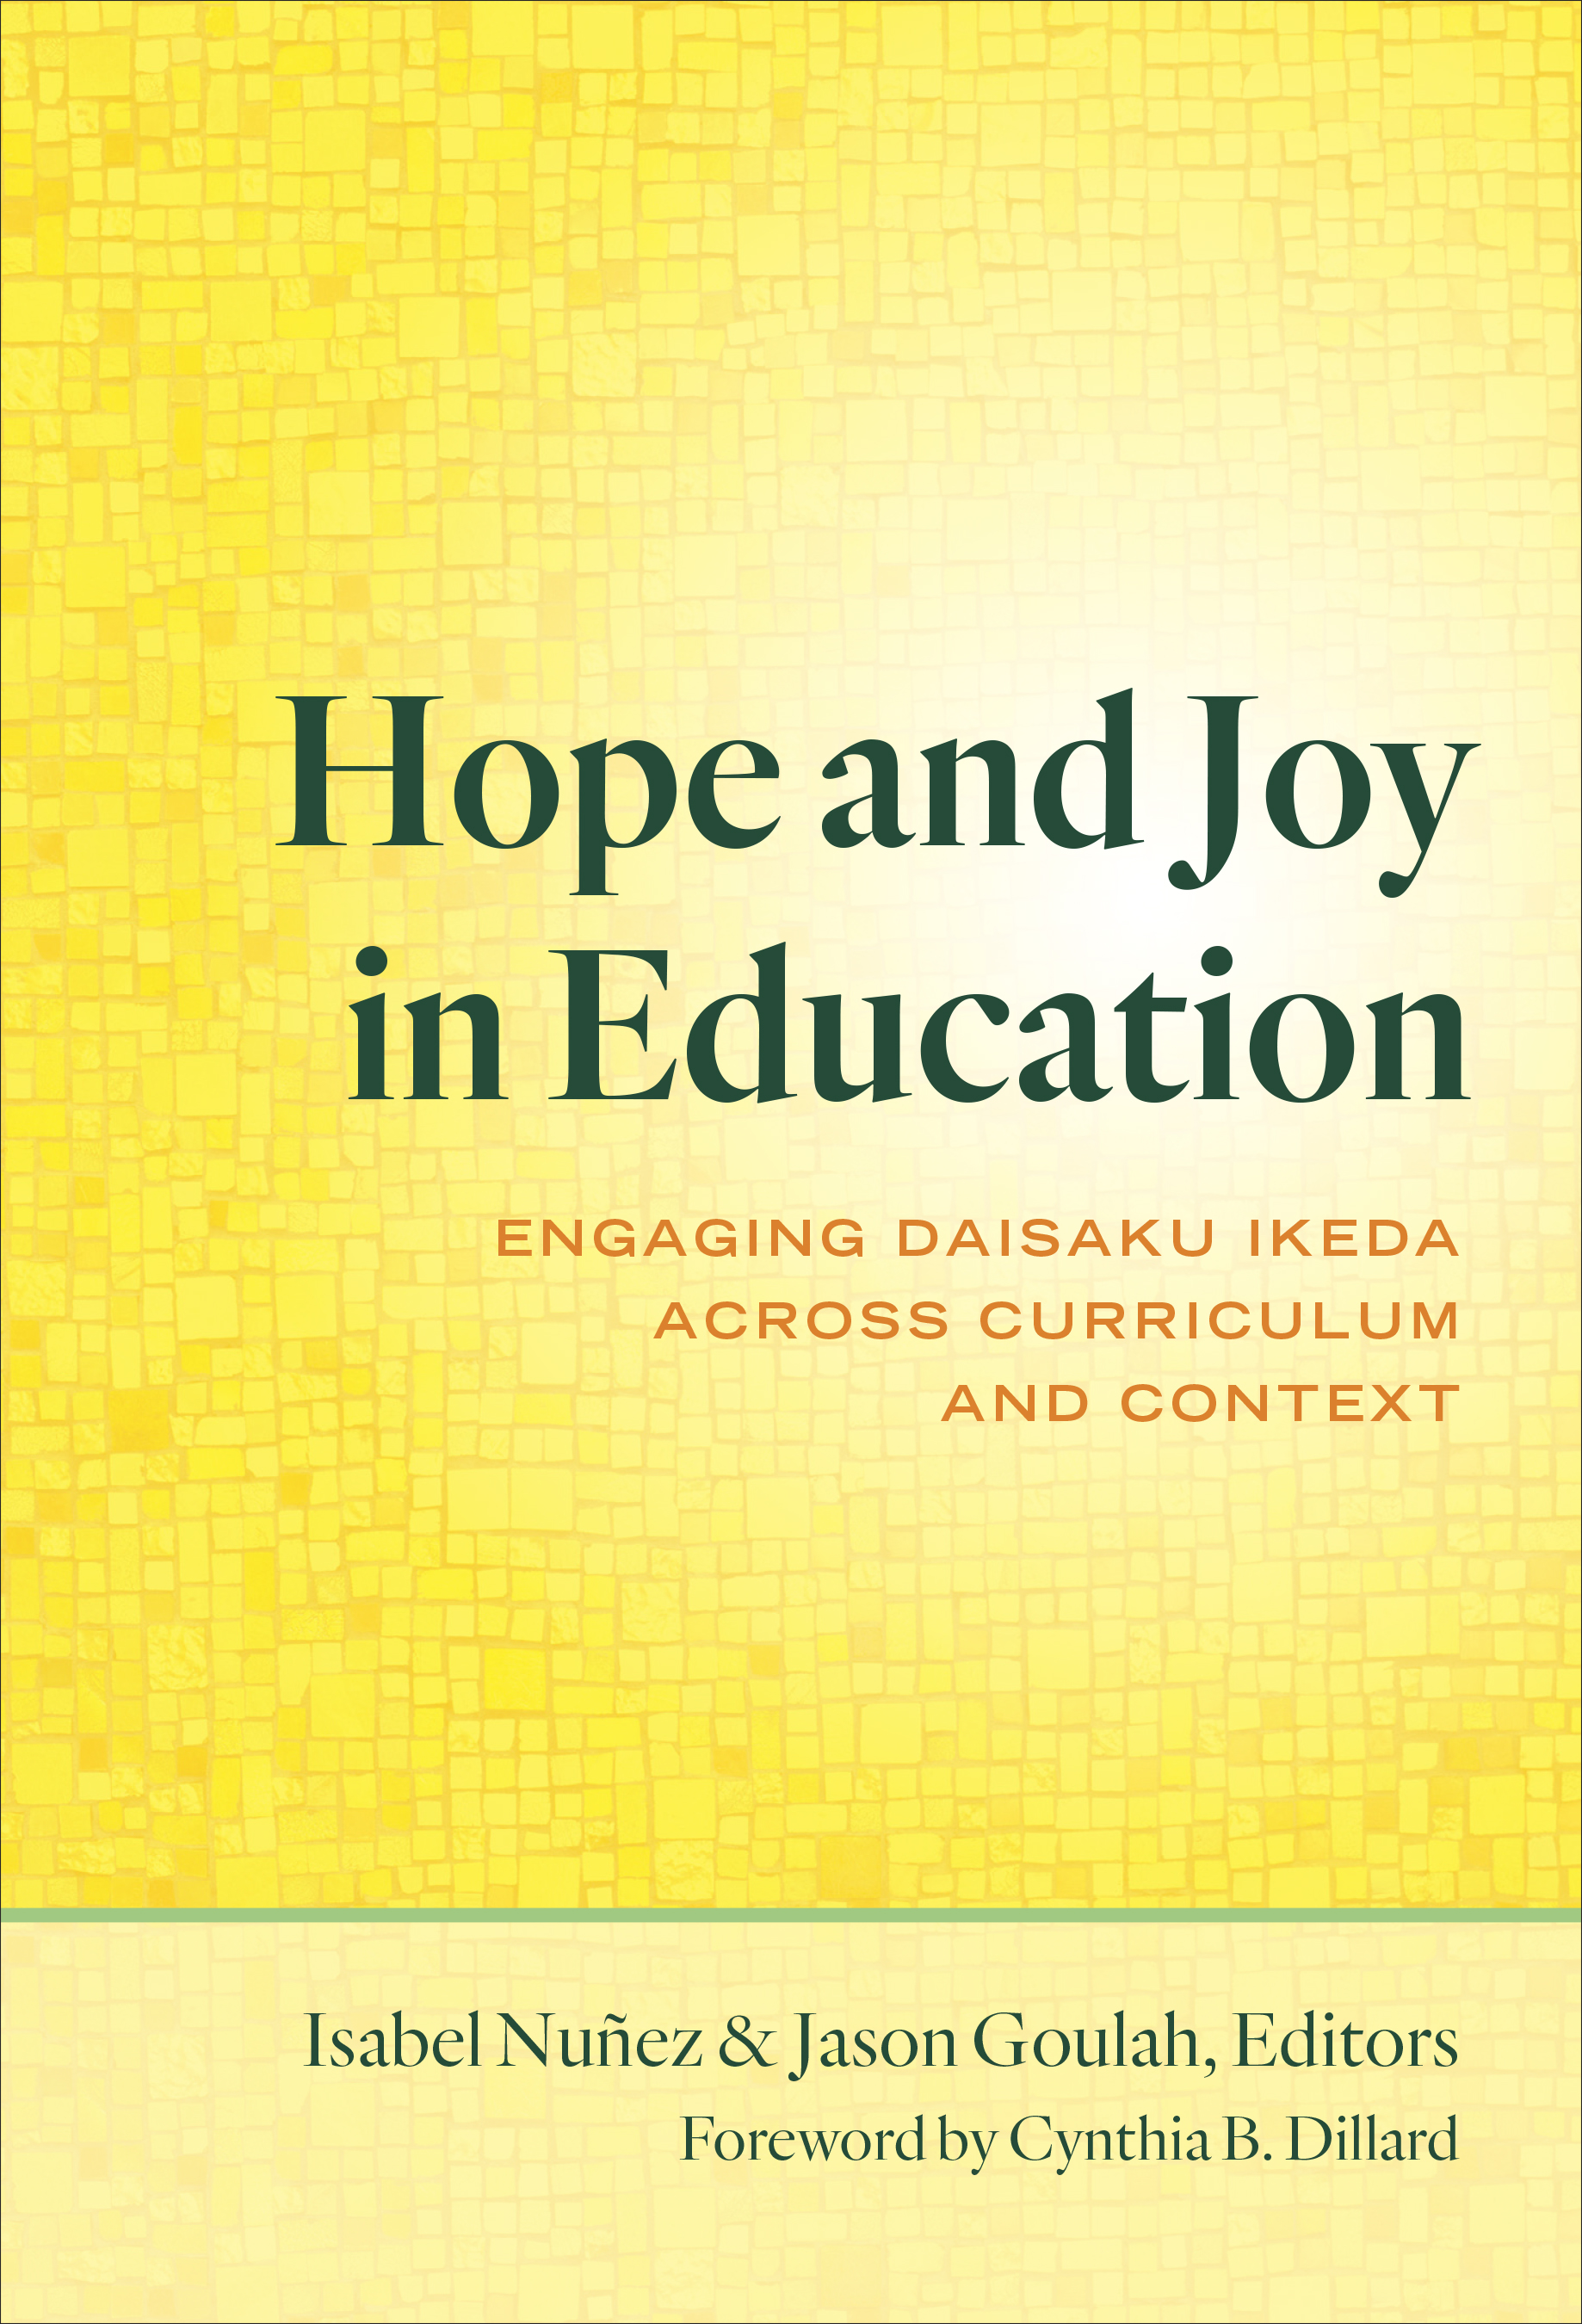 Hope and Joy in Education book cover image